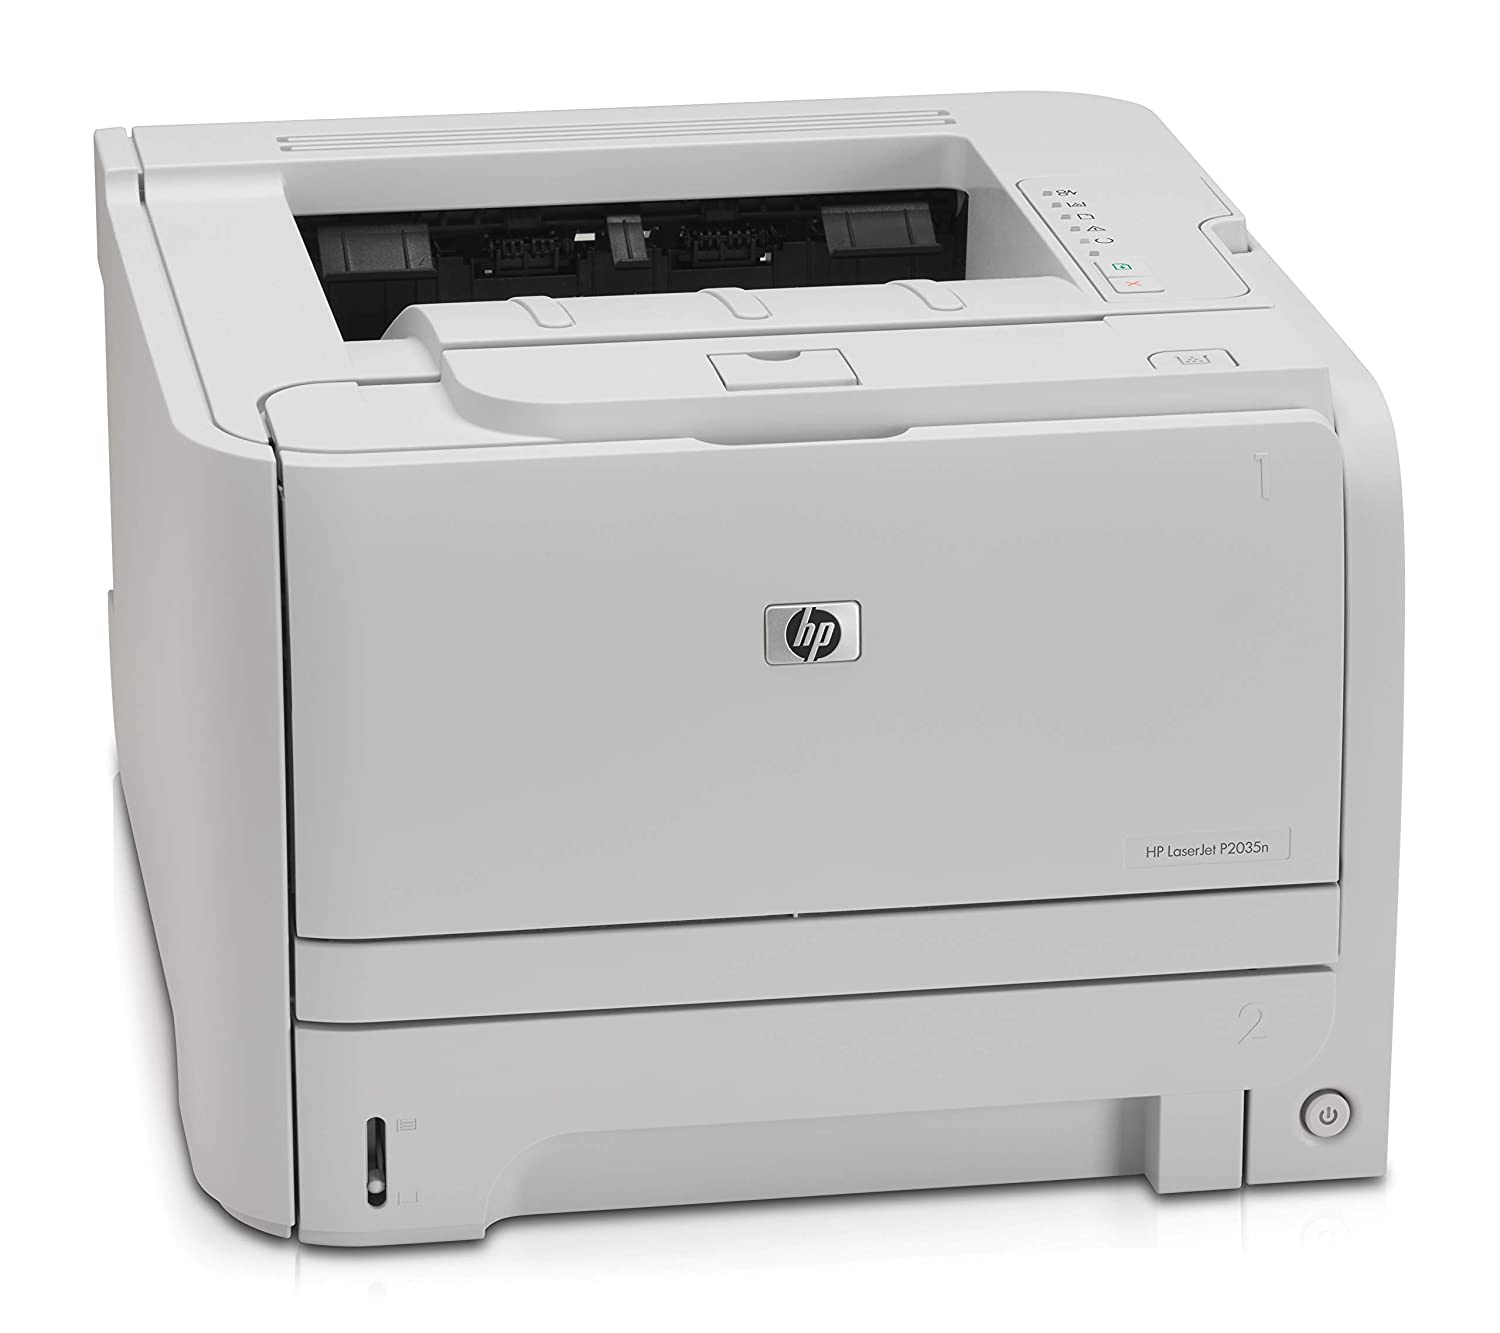 DOWNLOAD DRIVER: HP LASERJET P2035N PRINTER